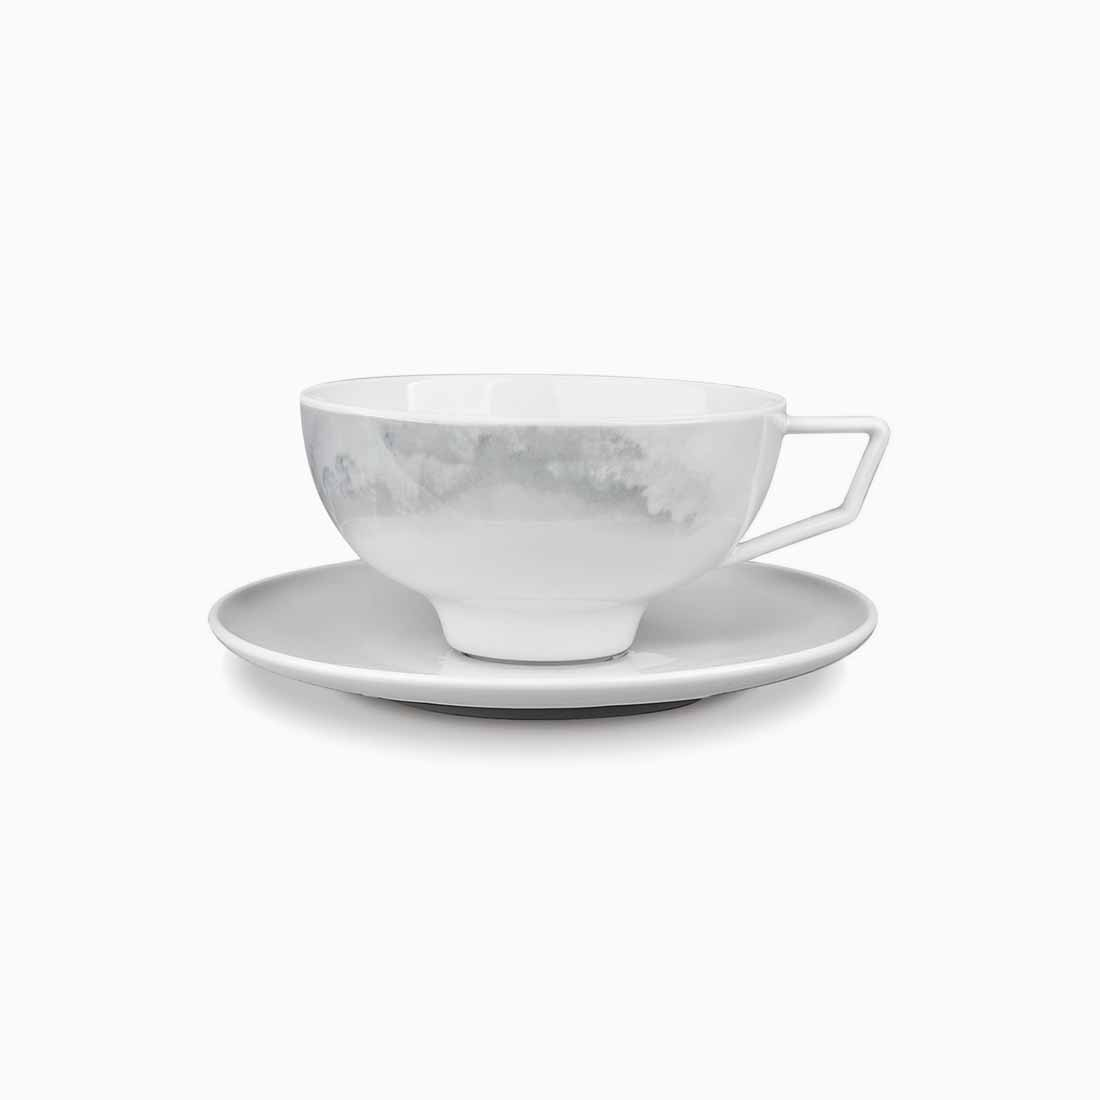 Pomona Teacup and Saucer Grey Tempest by Bodo Sperlein